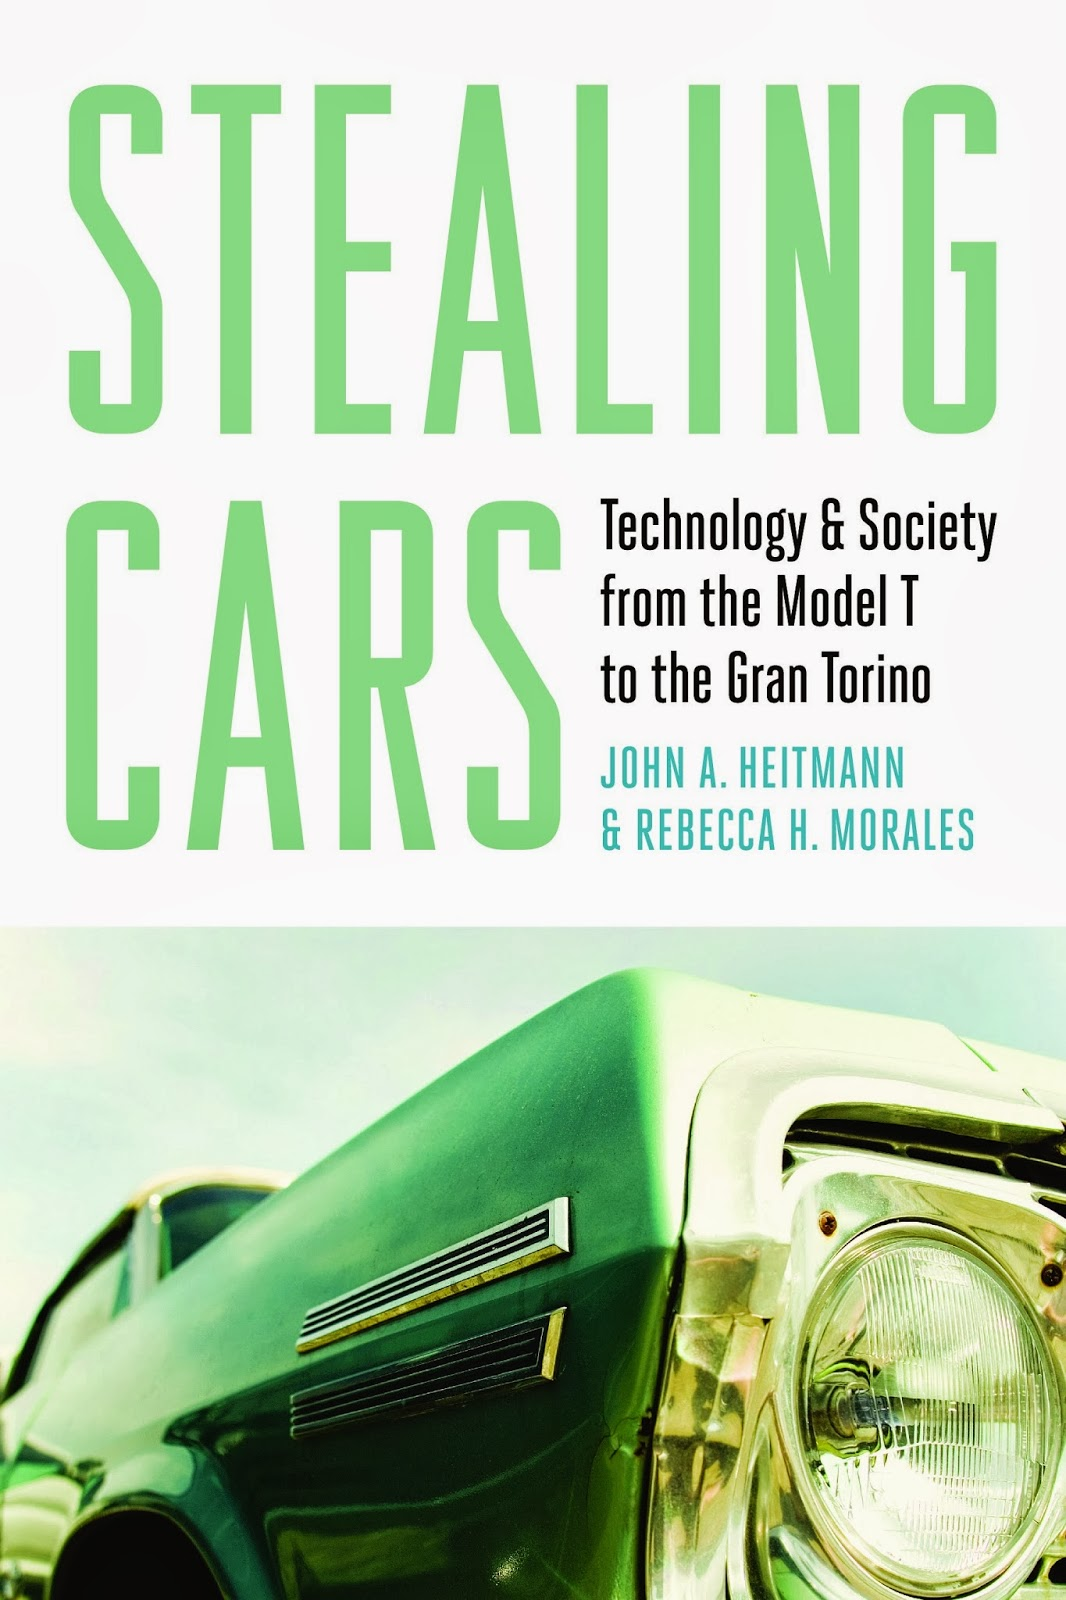 an introduction to the history of the automobile industry in the american society Global turnover of the world auto industry was close to 2 trillion euros in  entrenched feature of the us domestic market, but also creating a  cambridge journal of regions, economy and society 2010, 3, 311–318  nificant change since the introduction of assembly-  that appeared to exemplify this socio- historical.